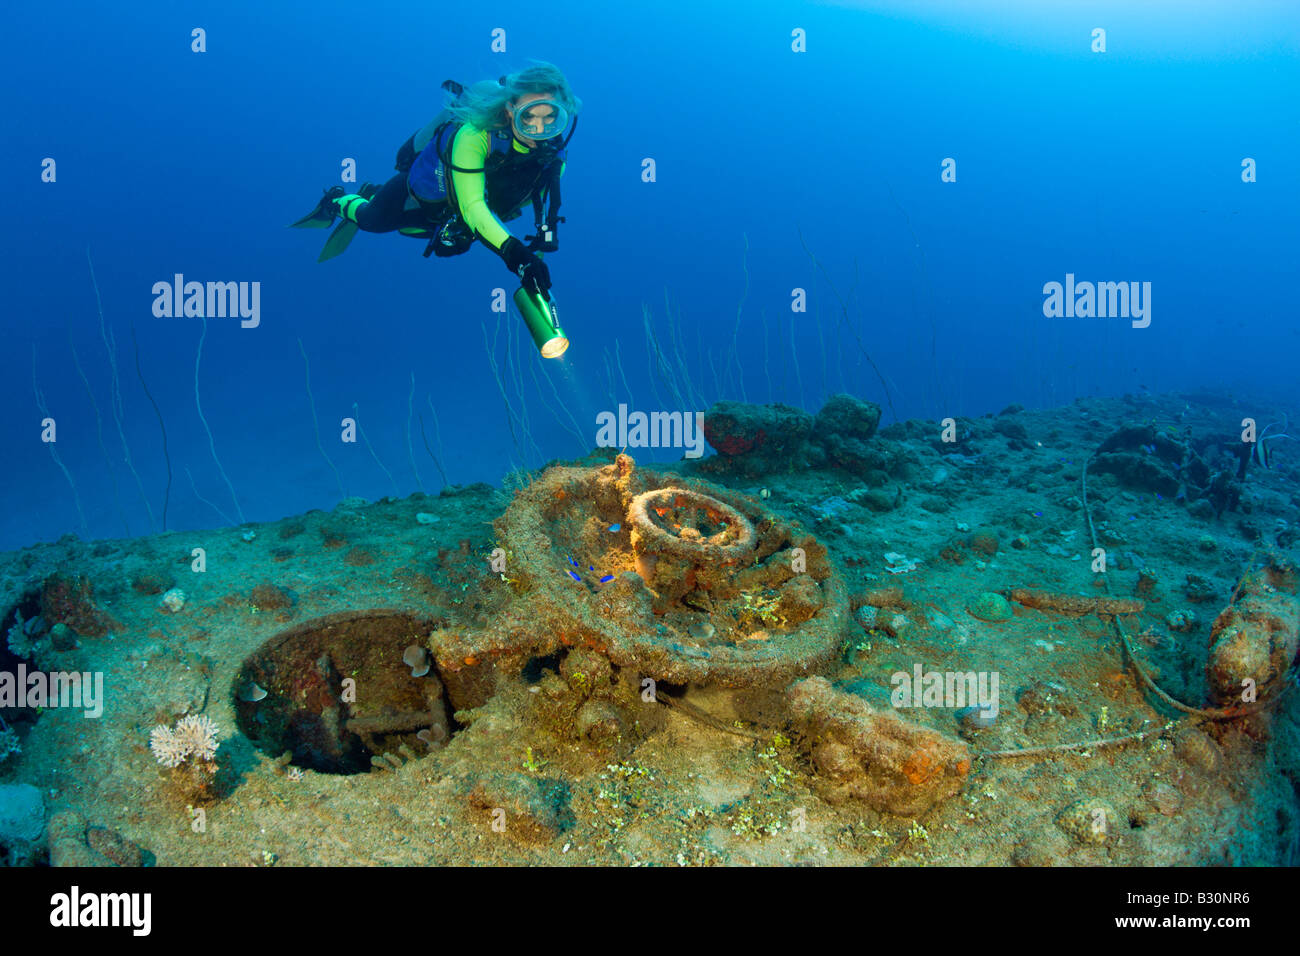 Diver and Hatch of USS Apogon Submarine Marshall Islands Bikini Atoll Micronesia Pacific Ocean - Stock Image